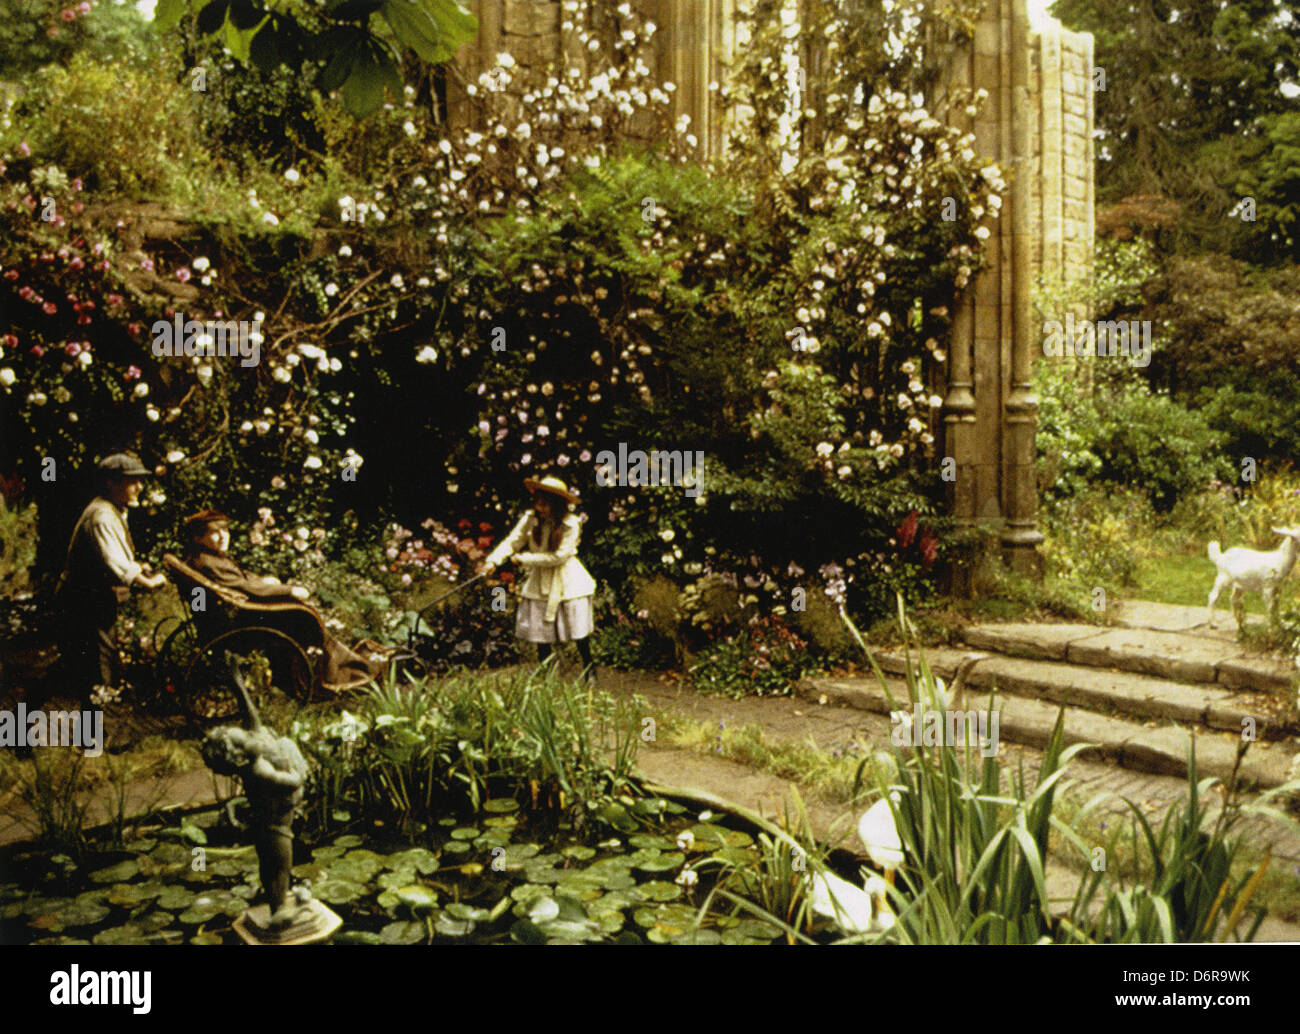 The secret garden 1993 warner bros film with kate maberly stock photo royalty free image for Where was the secret garden filmed